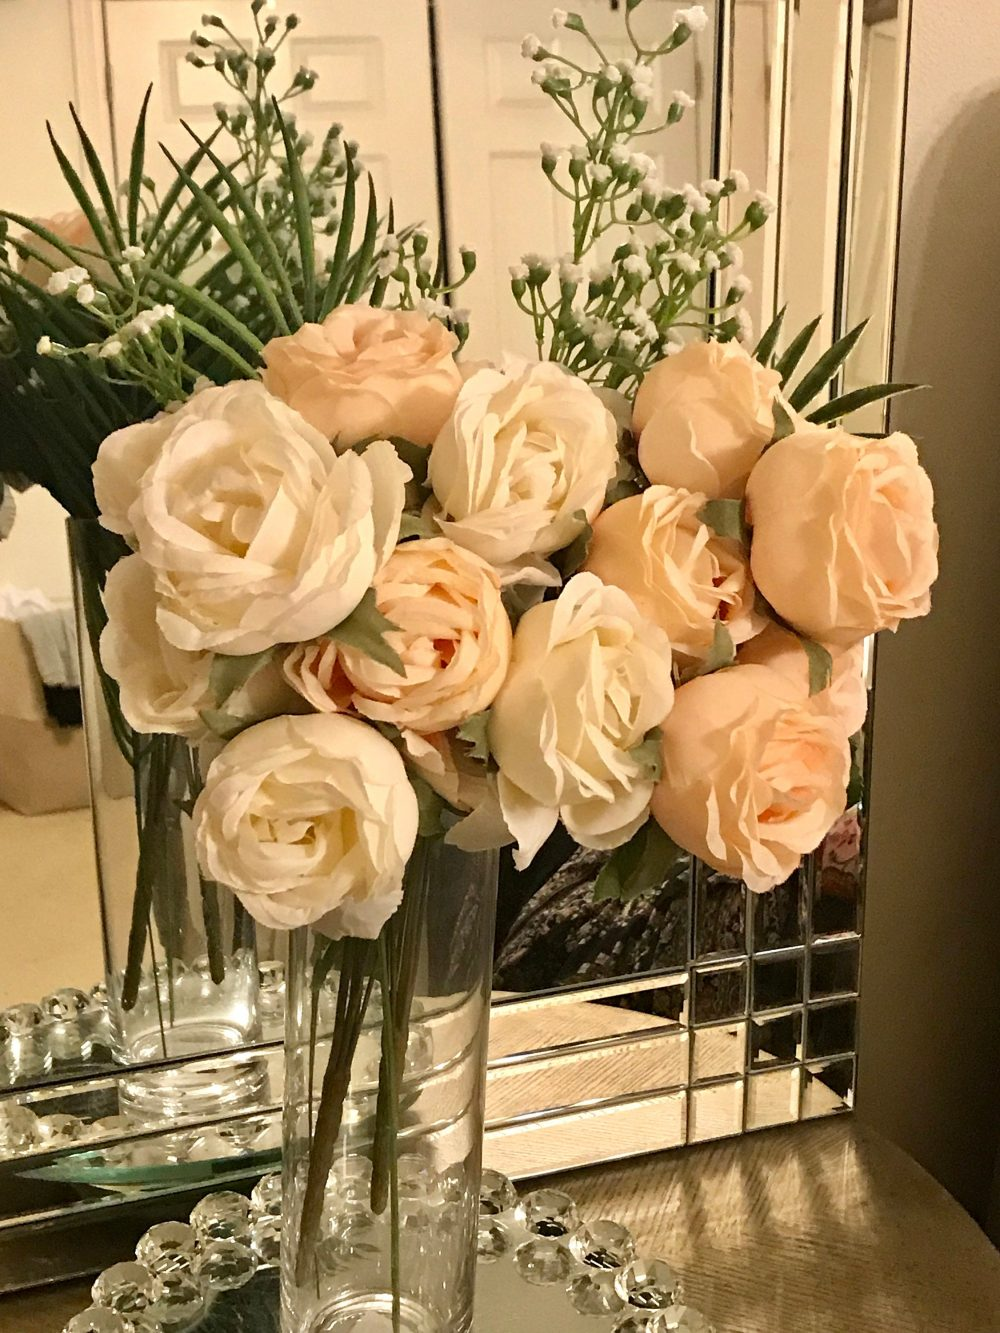 Beautiful Tall Floral Arrangement Centerpiece. Pale Peach & Off White Roses Elegantly Arranged in A Cylinder Glass Vase Home Decor